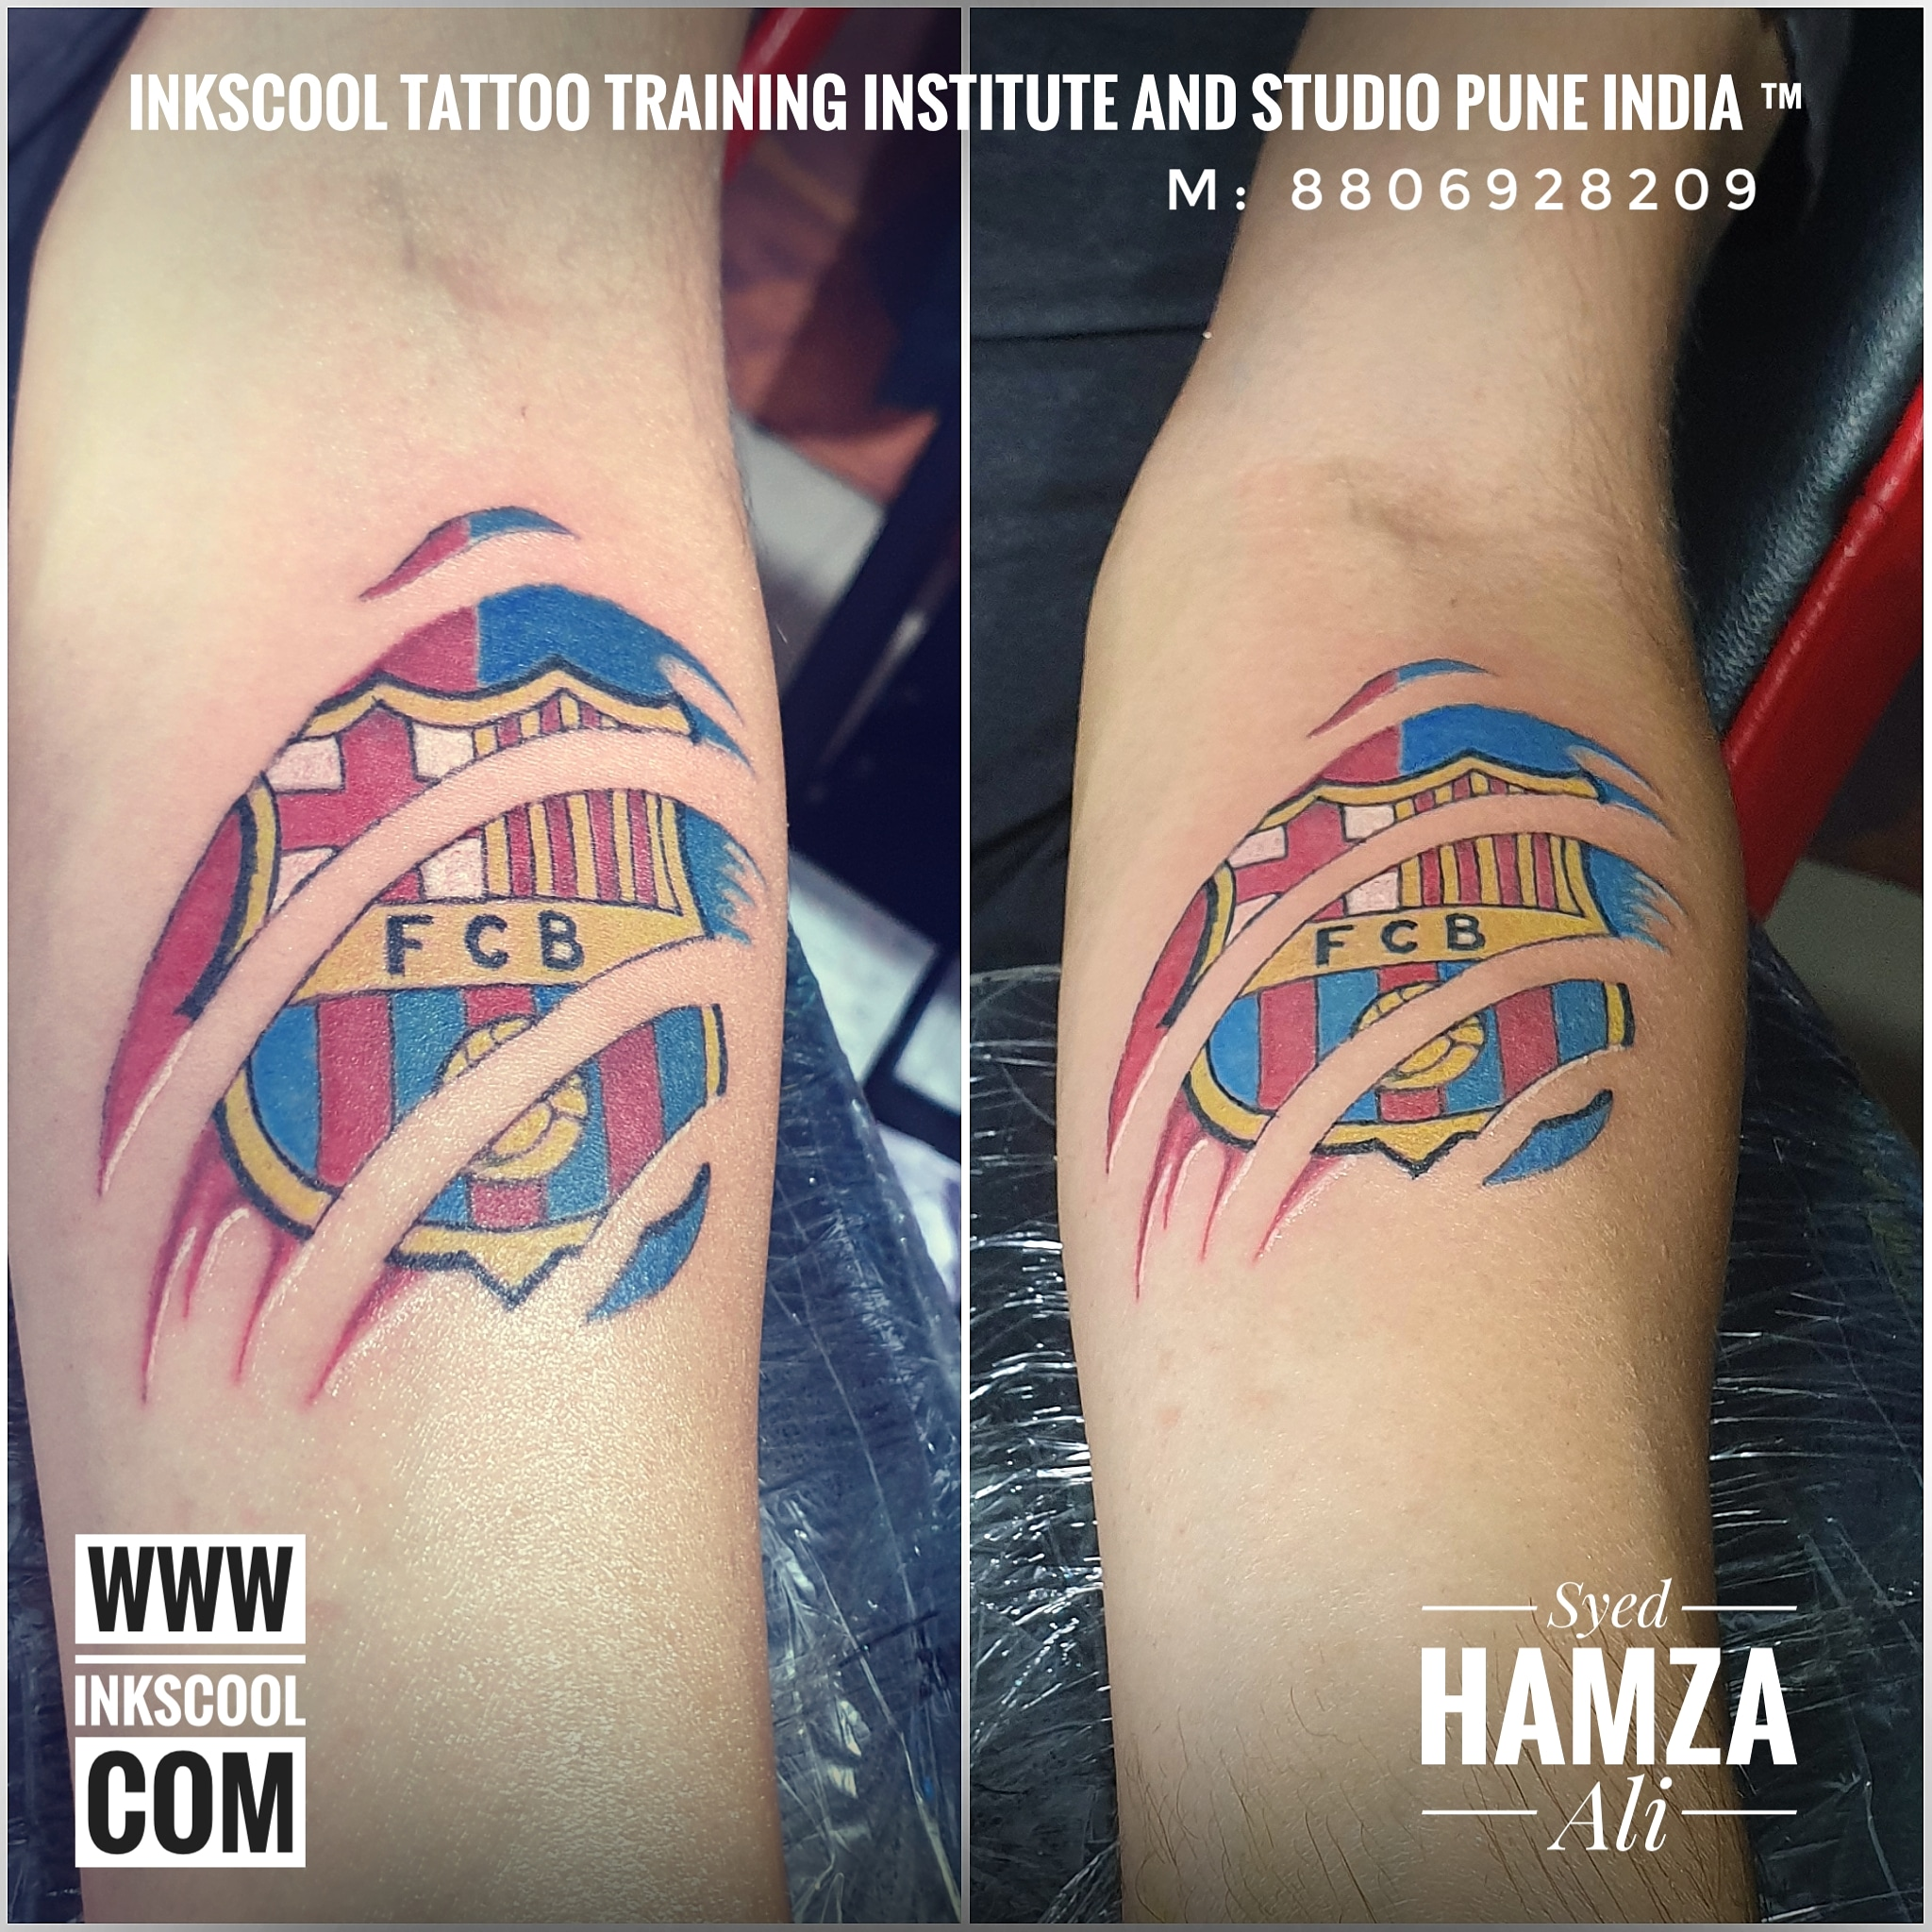 Inkscooltattoos_fcb_football_tattoo